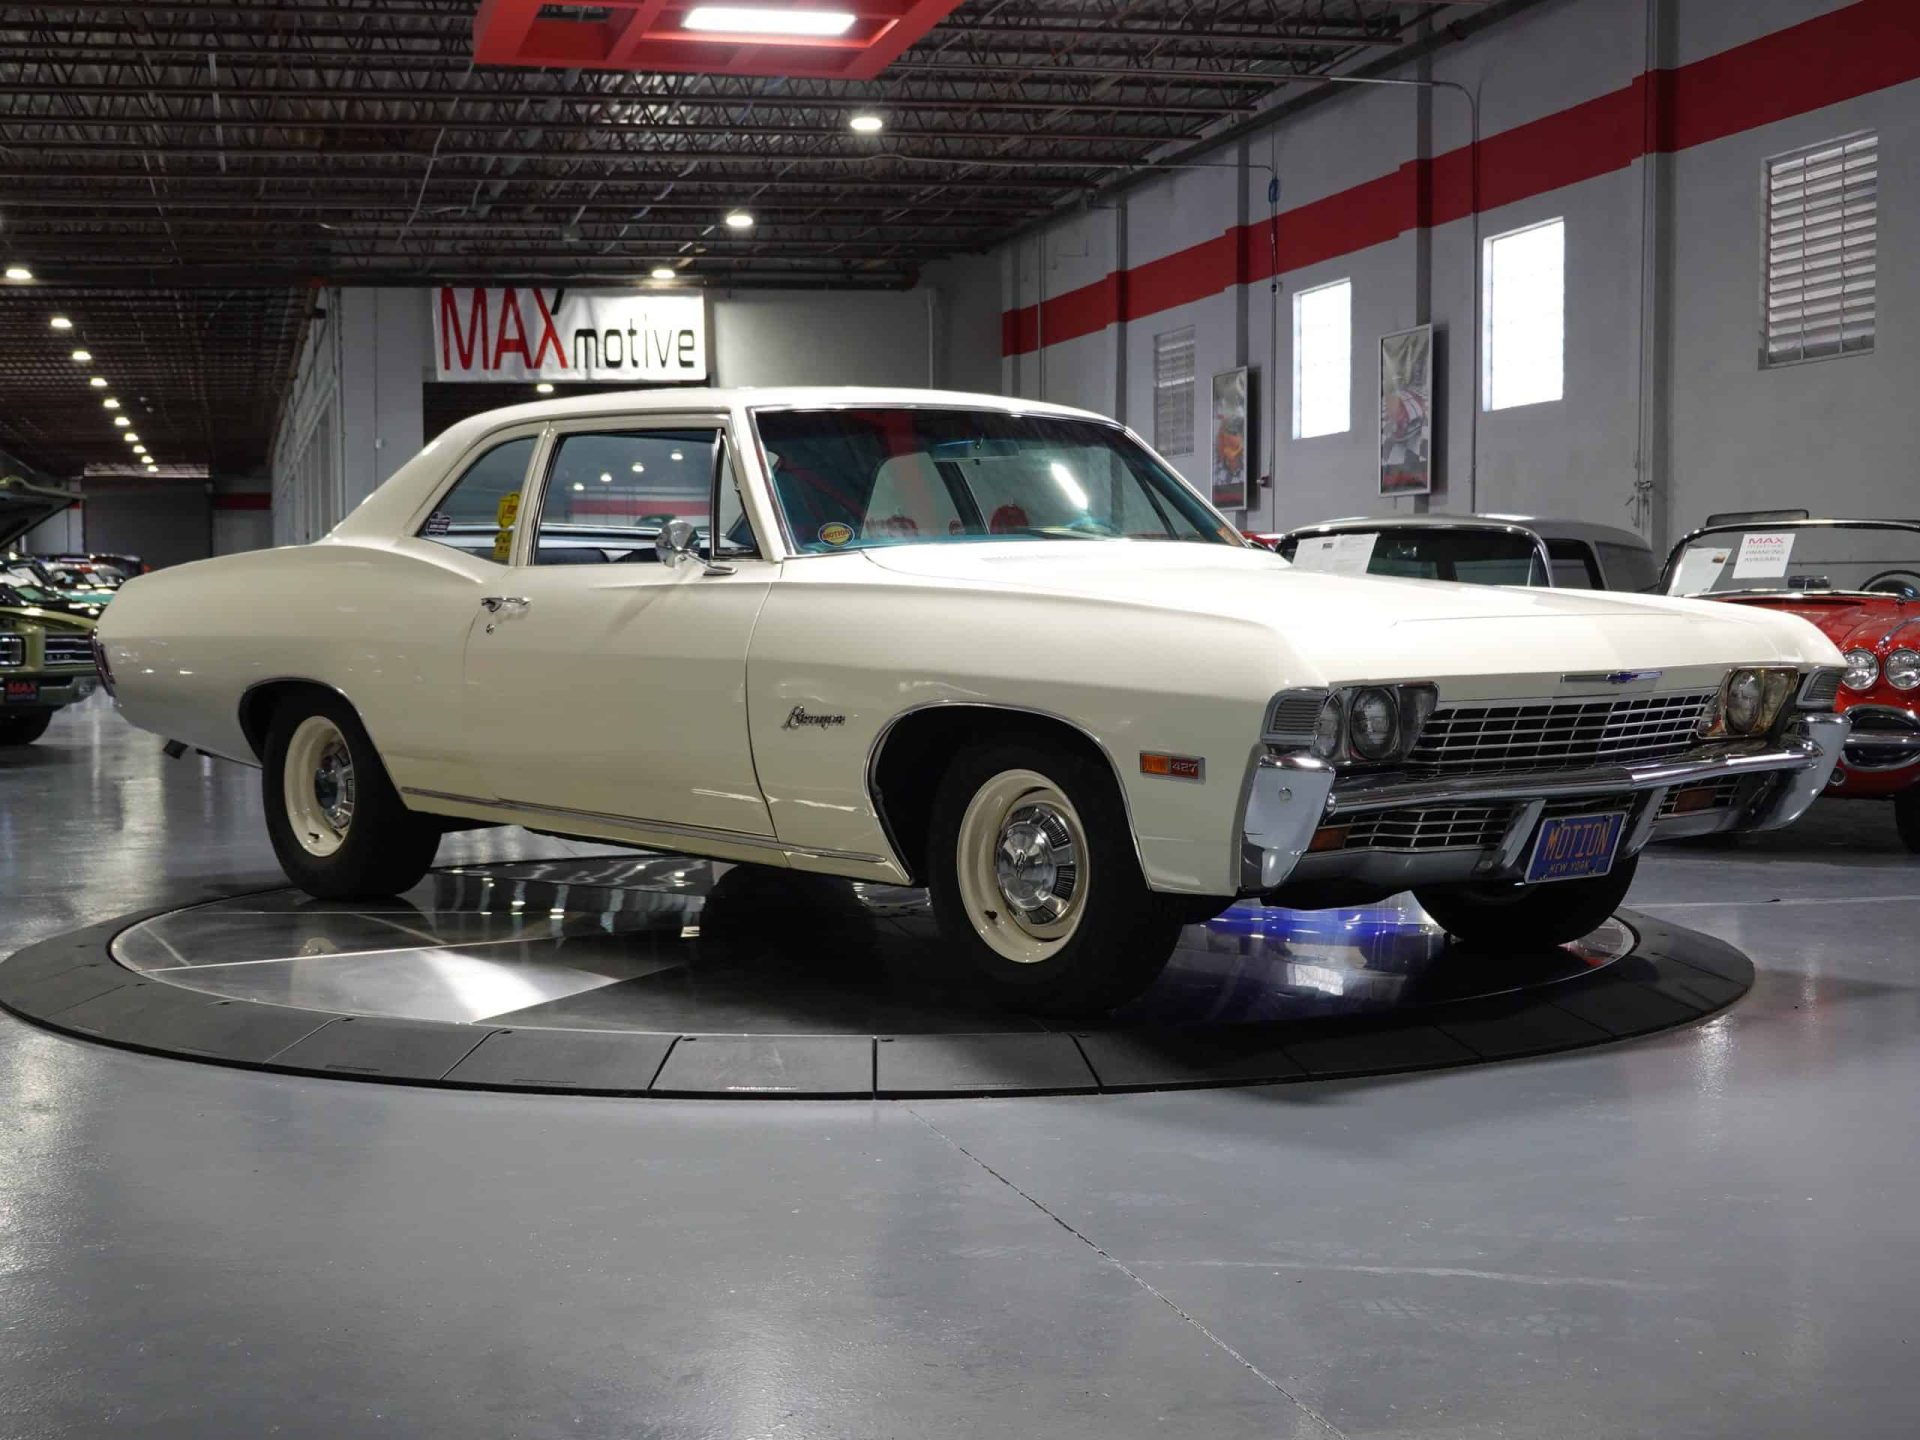 1968 Chevrolet Biscayne Coupe - F0619